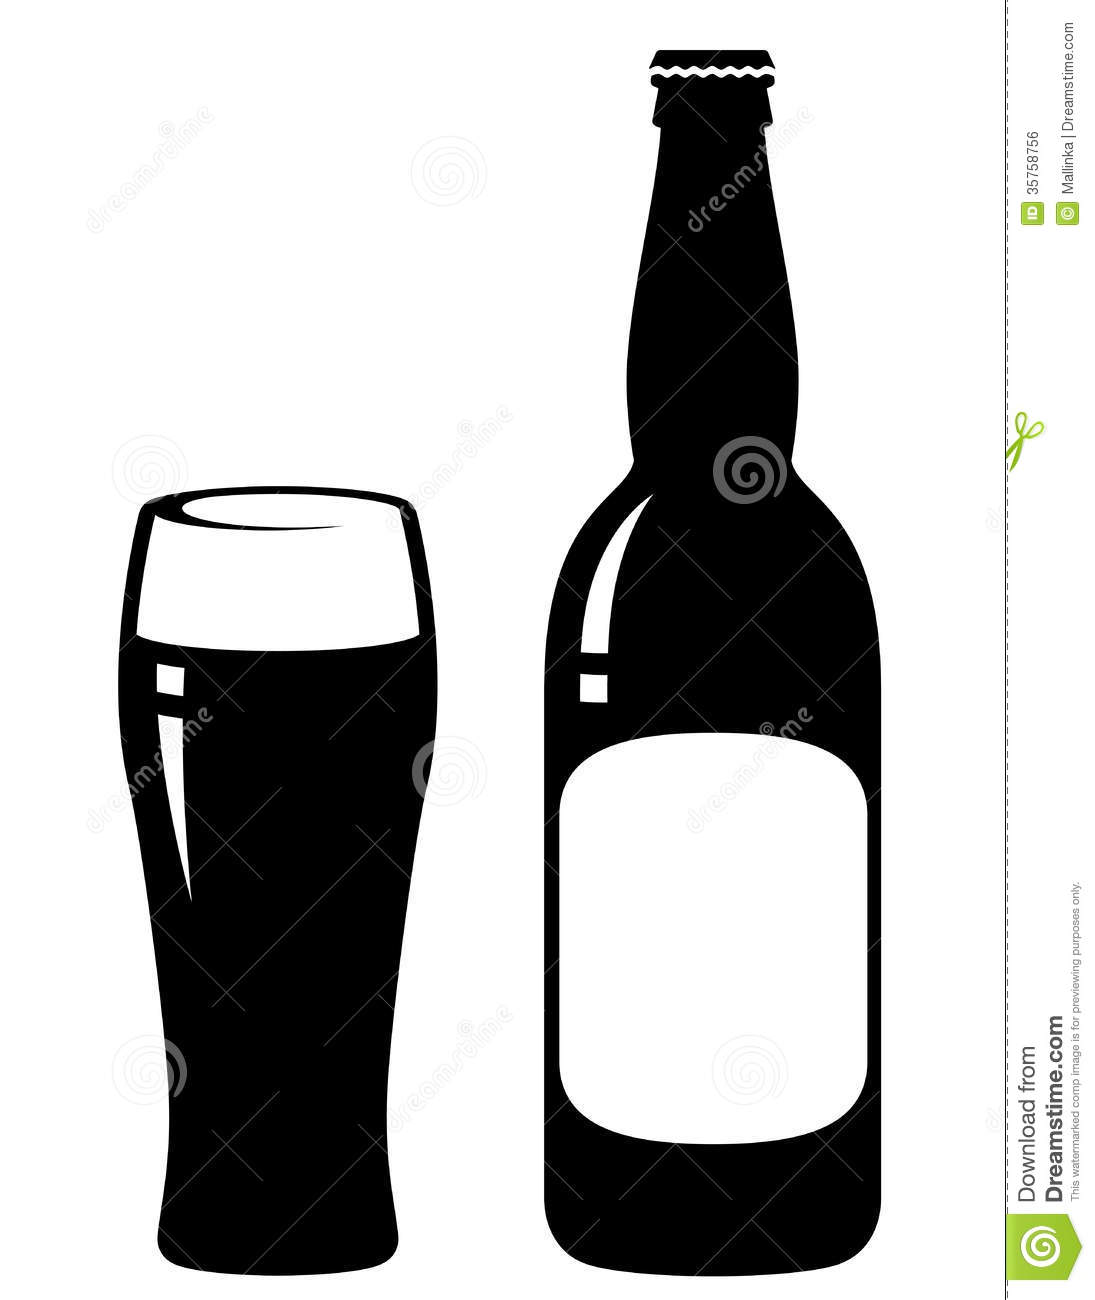 Drinks at getdrawings com. Bottle clipart silhouette